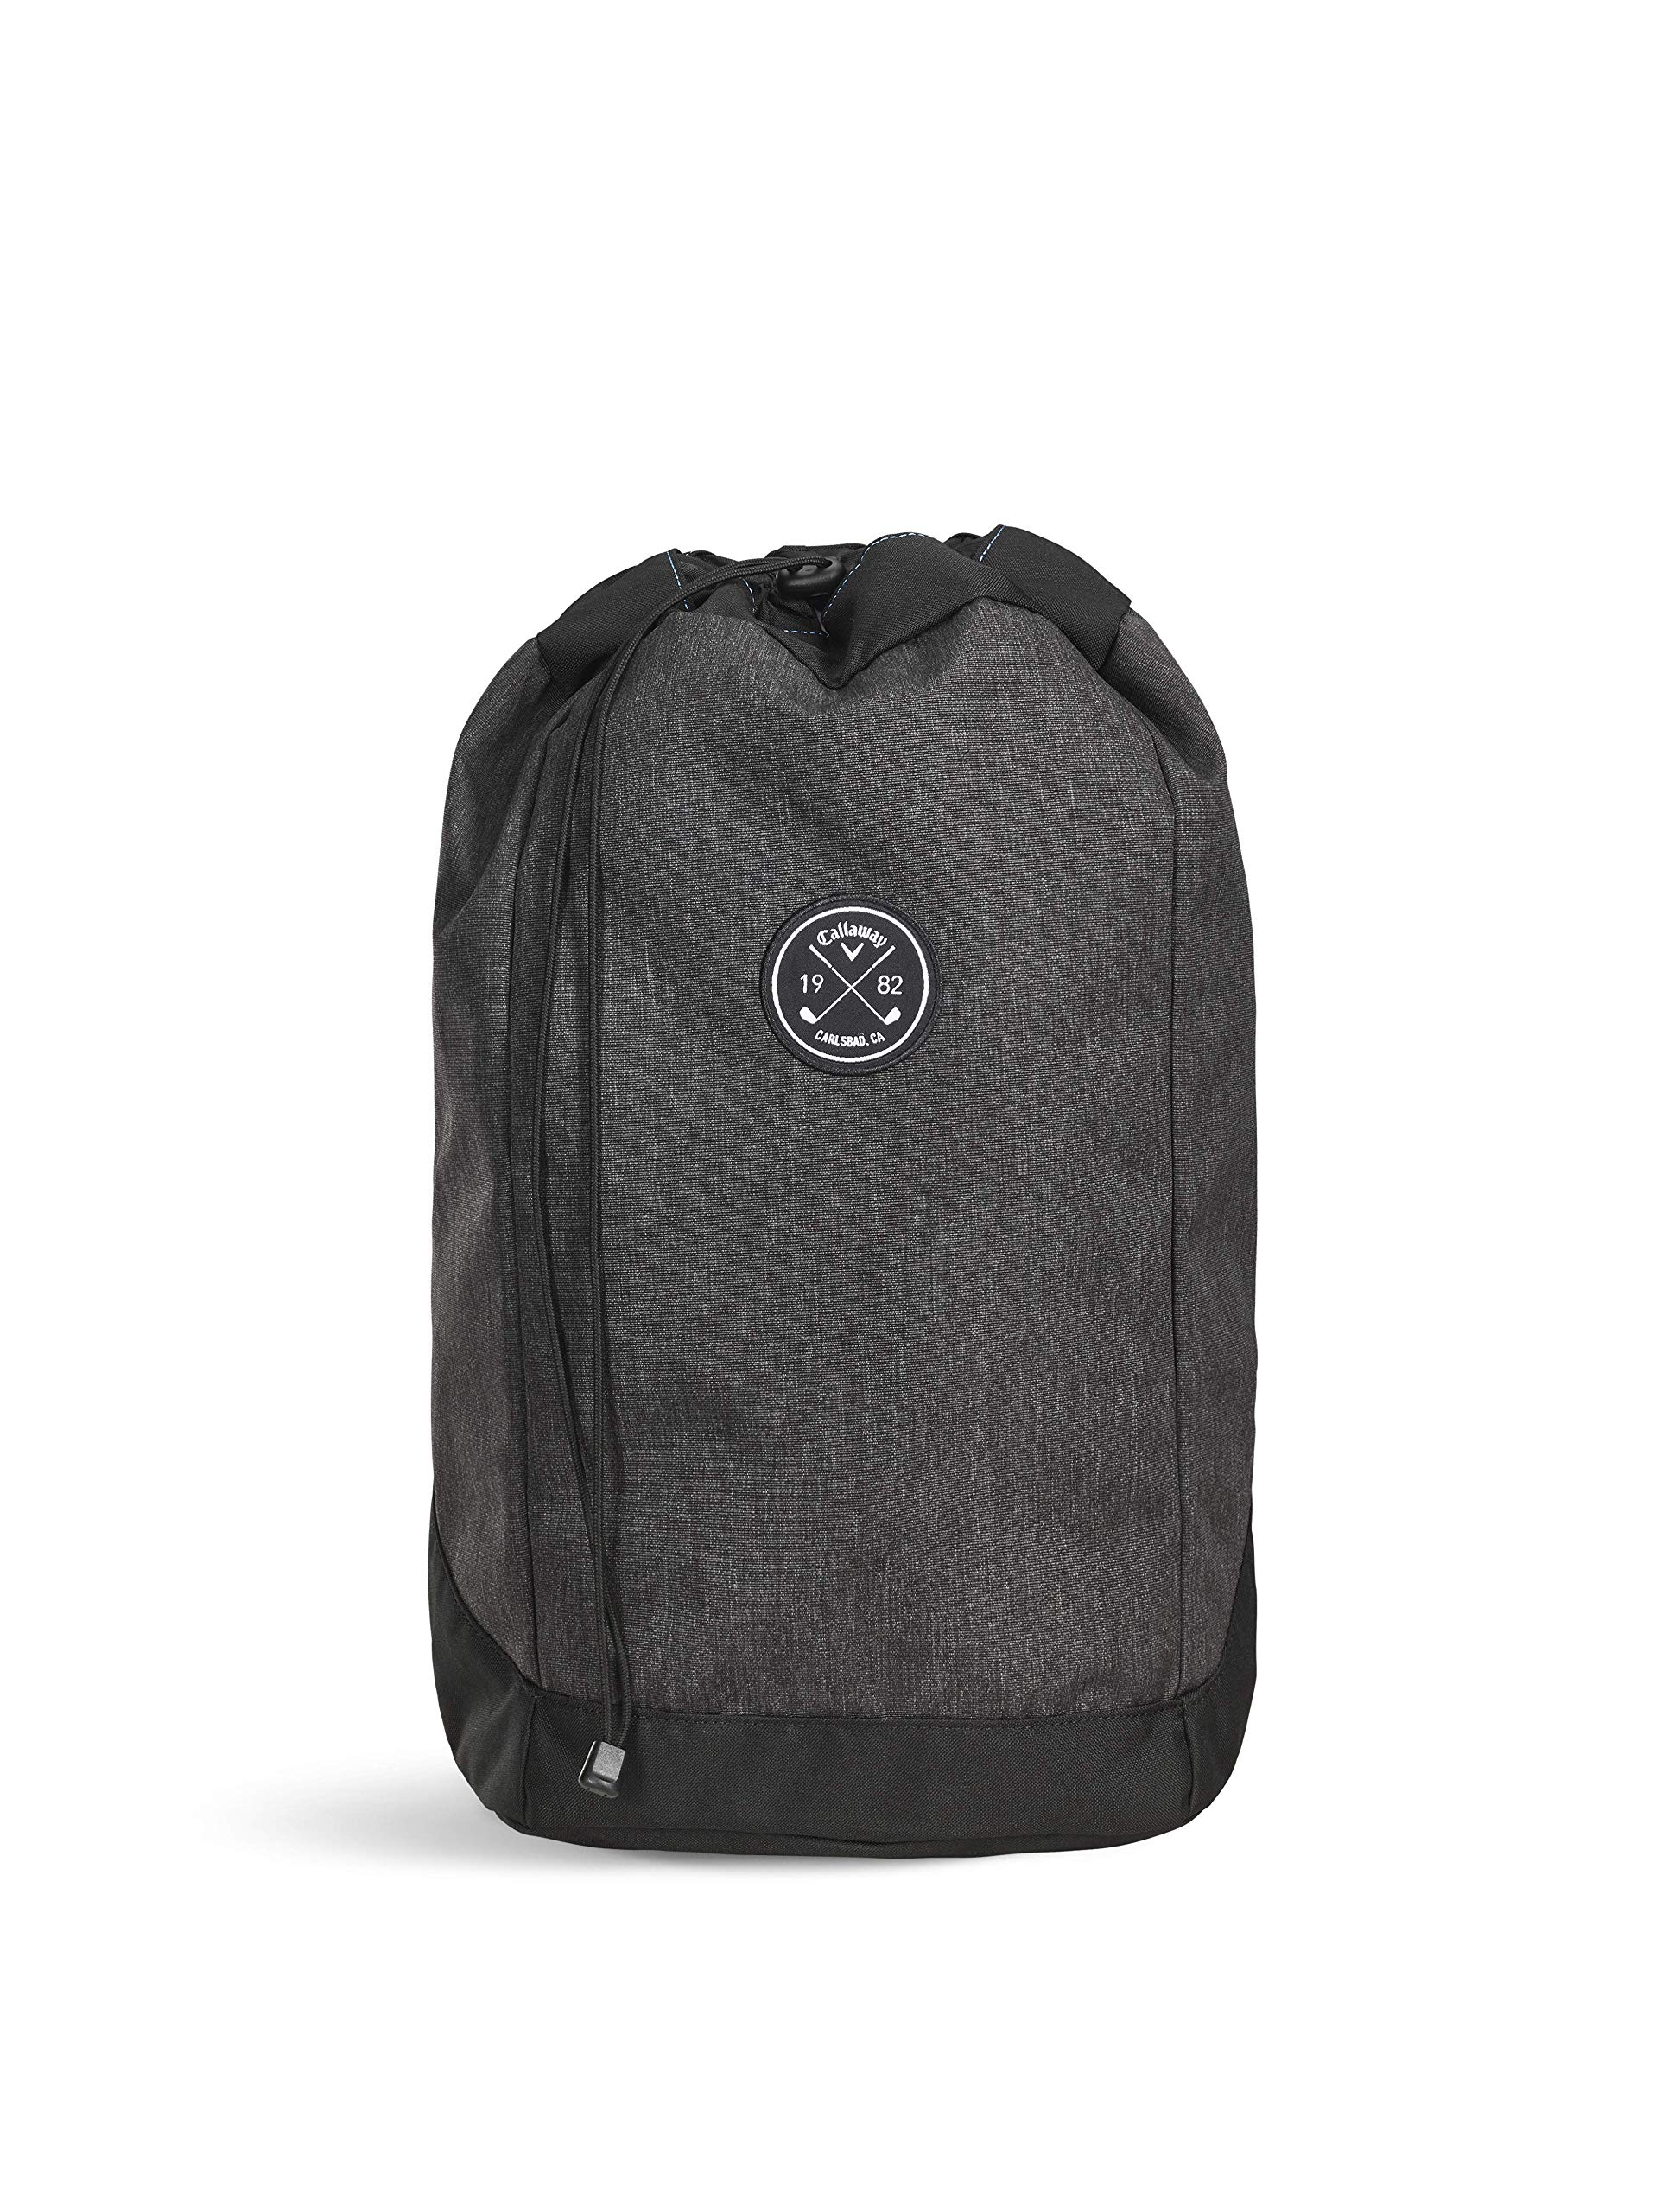 Callaway Men's Clubhouse Backpack, Black, One Size Callaway Padded Laptop Sleeve Comfort Grip Handle Interior Mesh Pocket with Key Clip 2